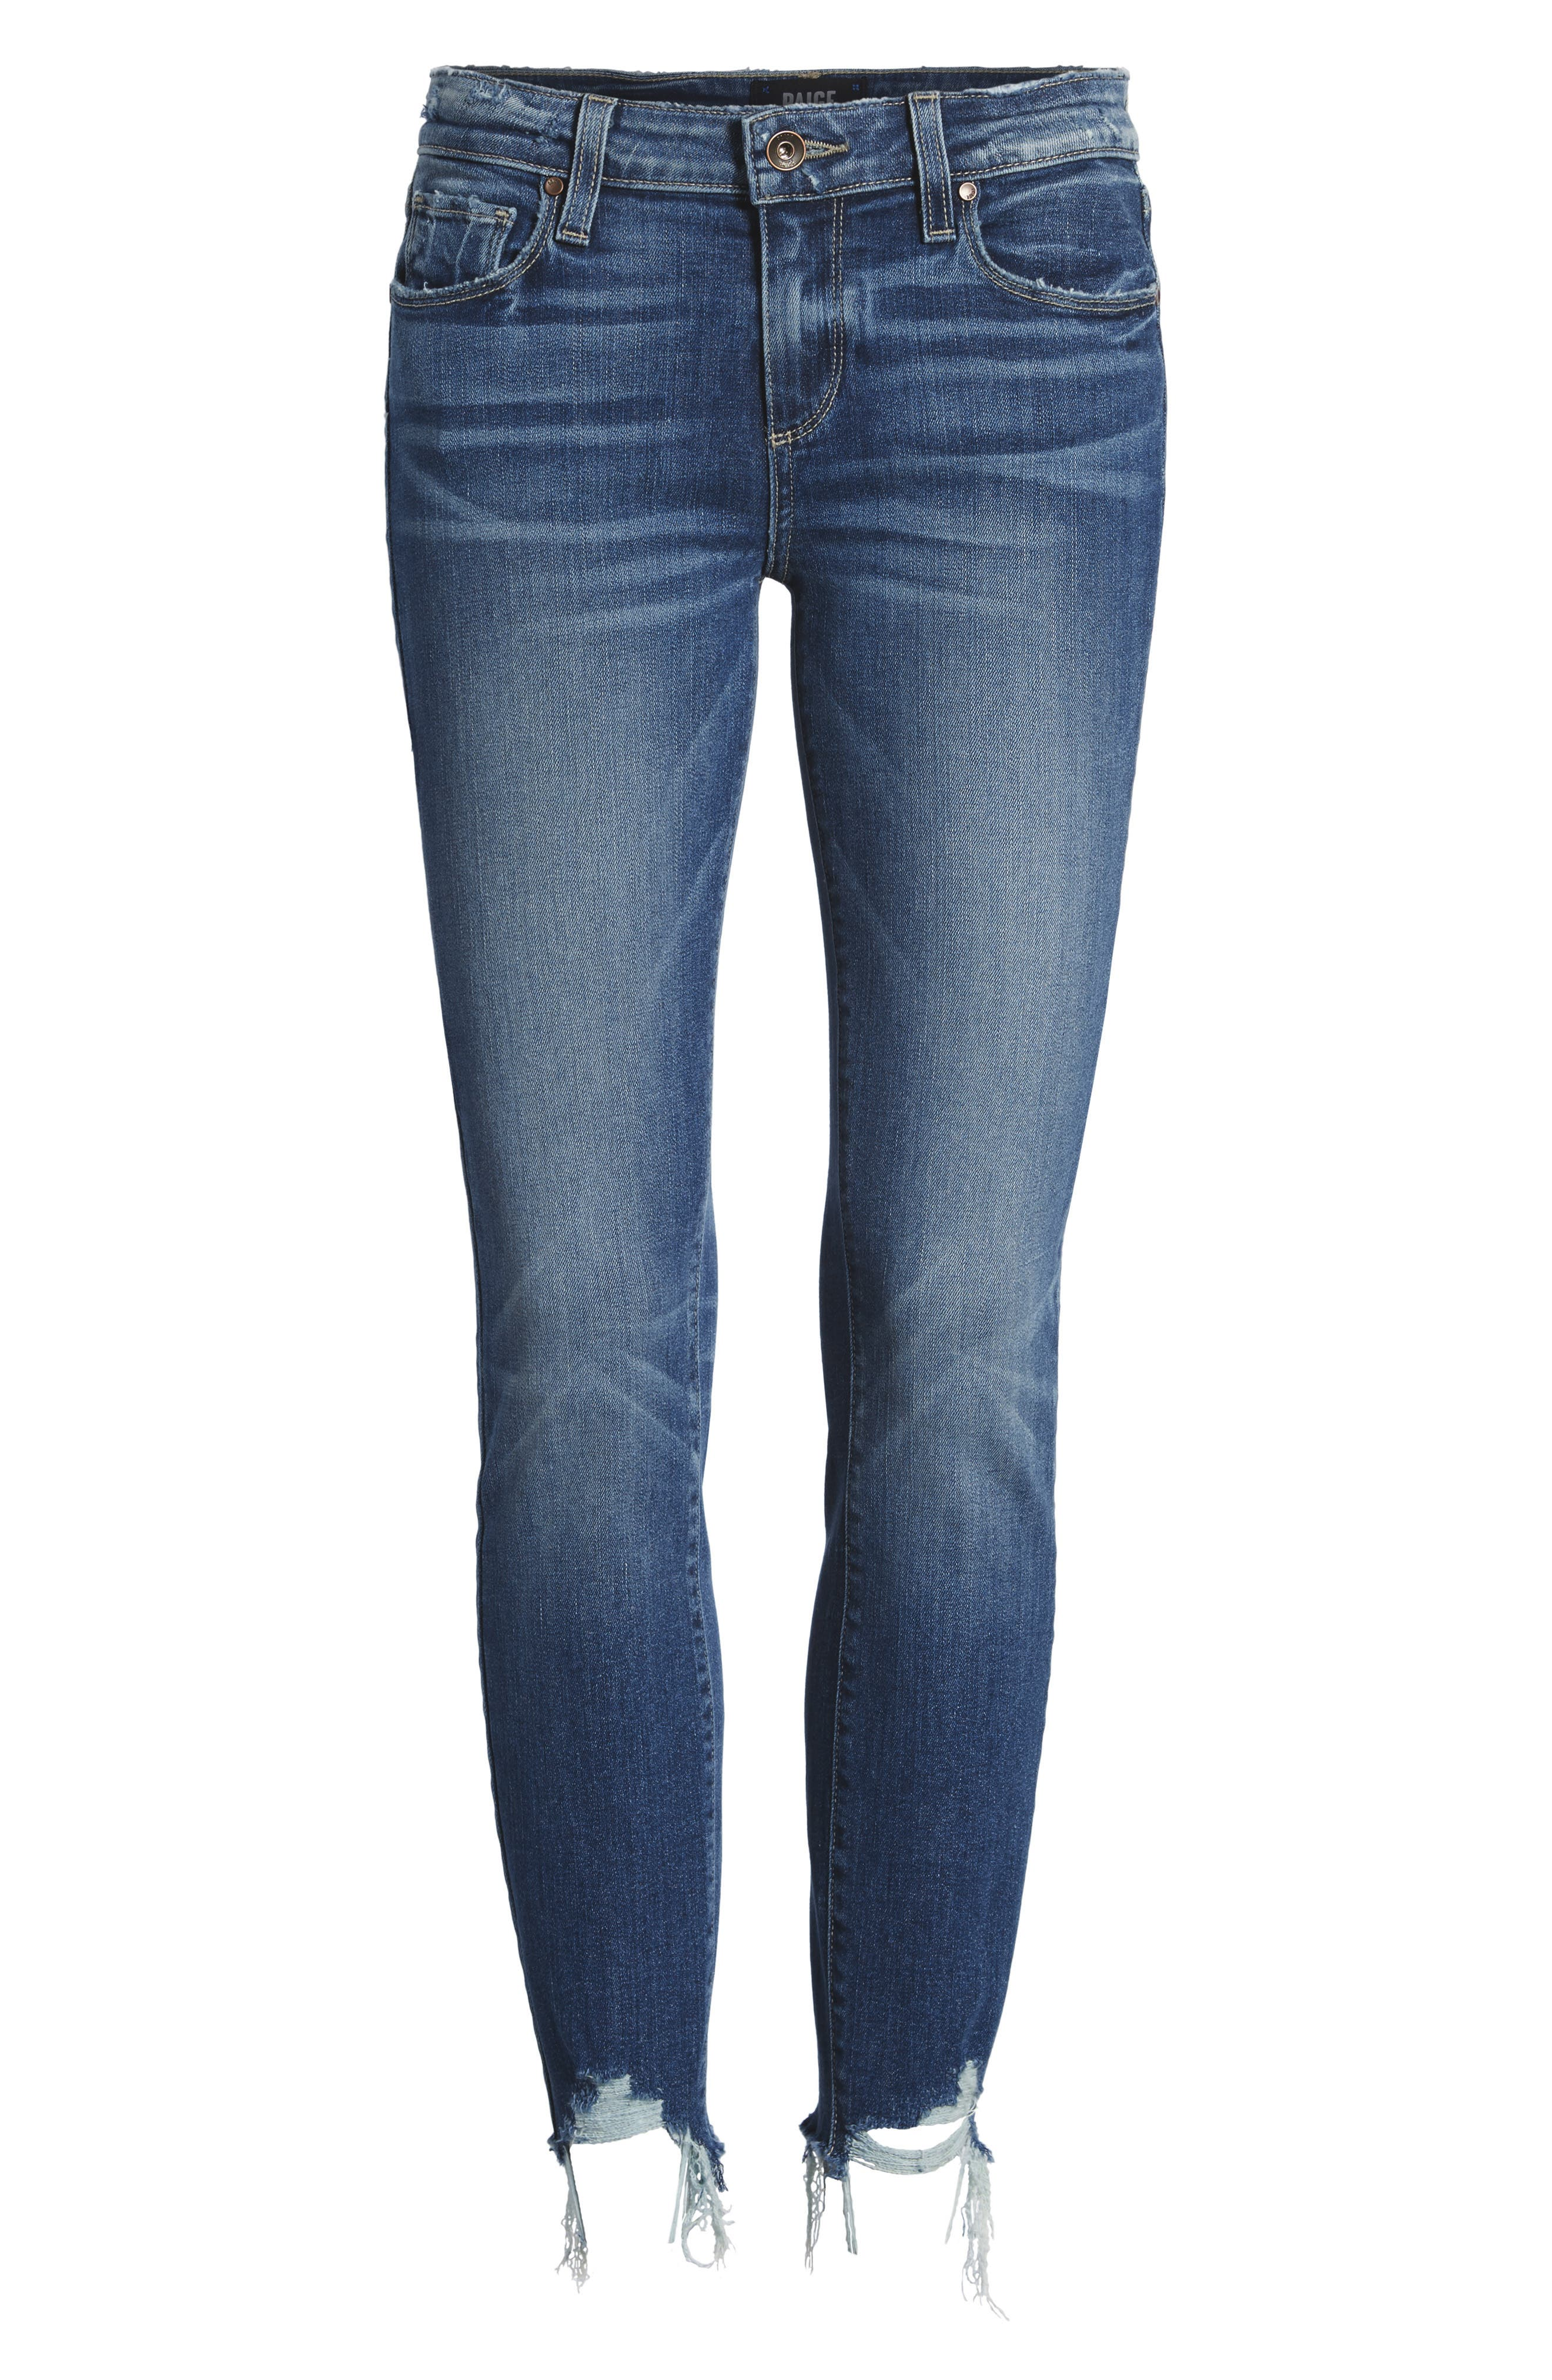 Transcend Vintage - Verdugo Ankle Skinny Jeans,                             Alternate thumbnail 6, color,                             Malibu Super Distressed